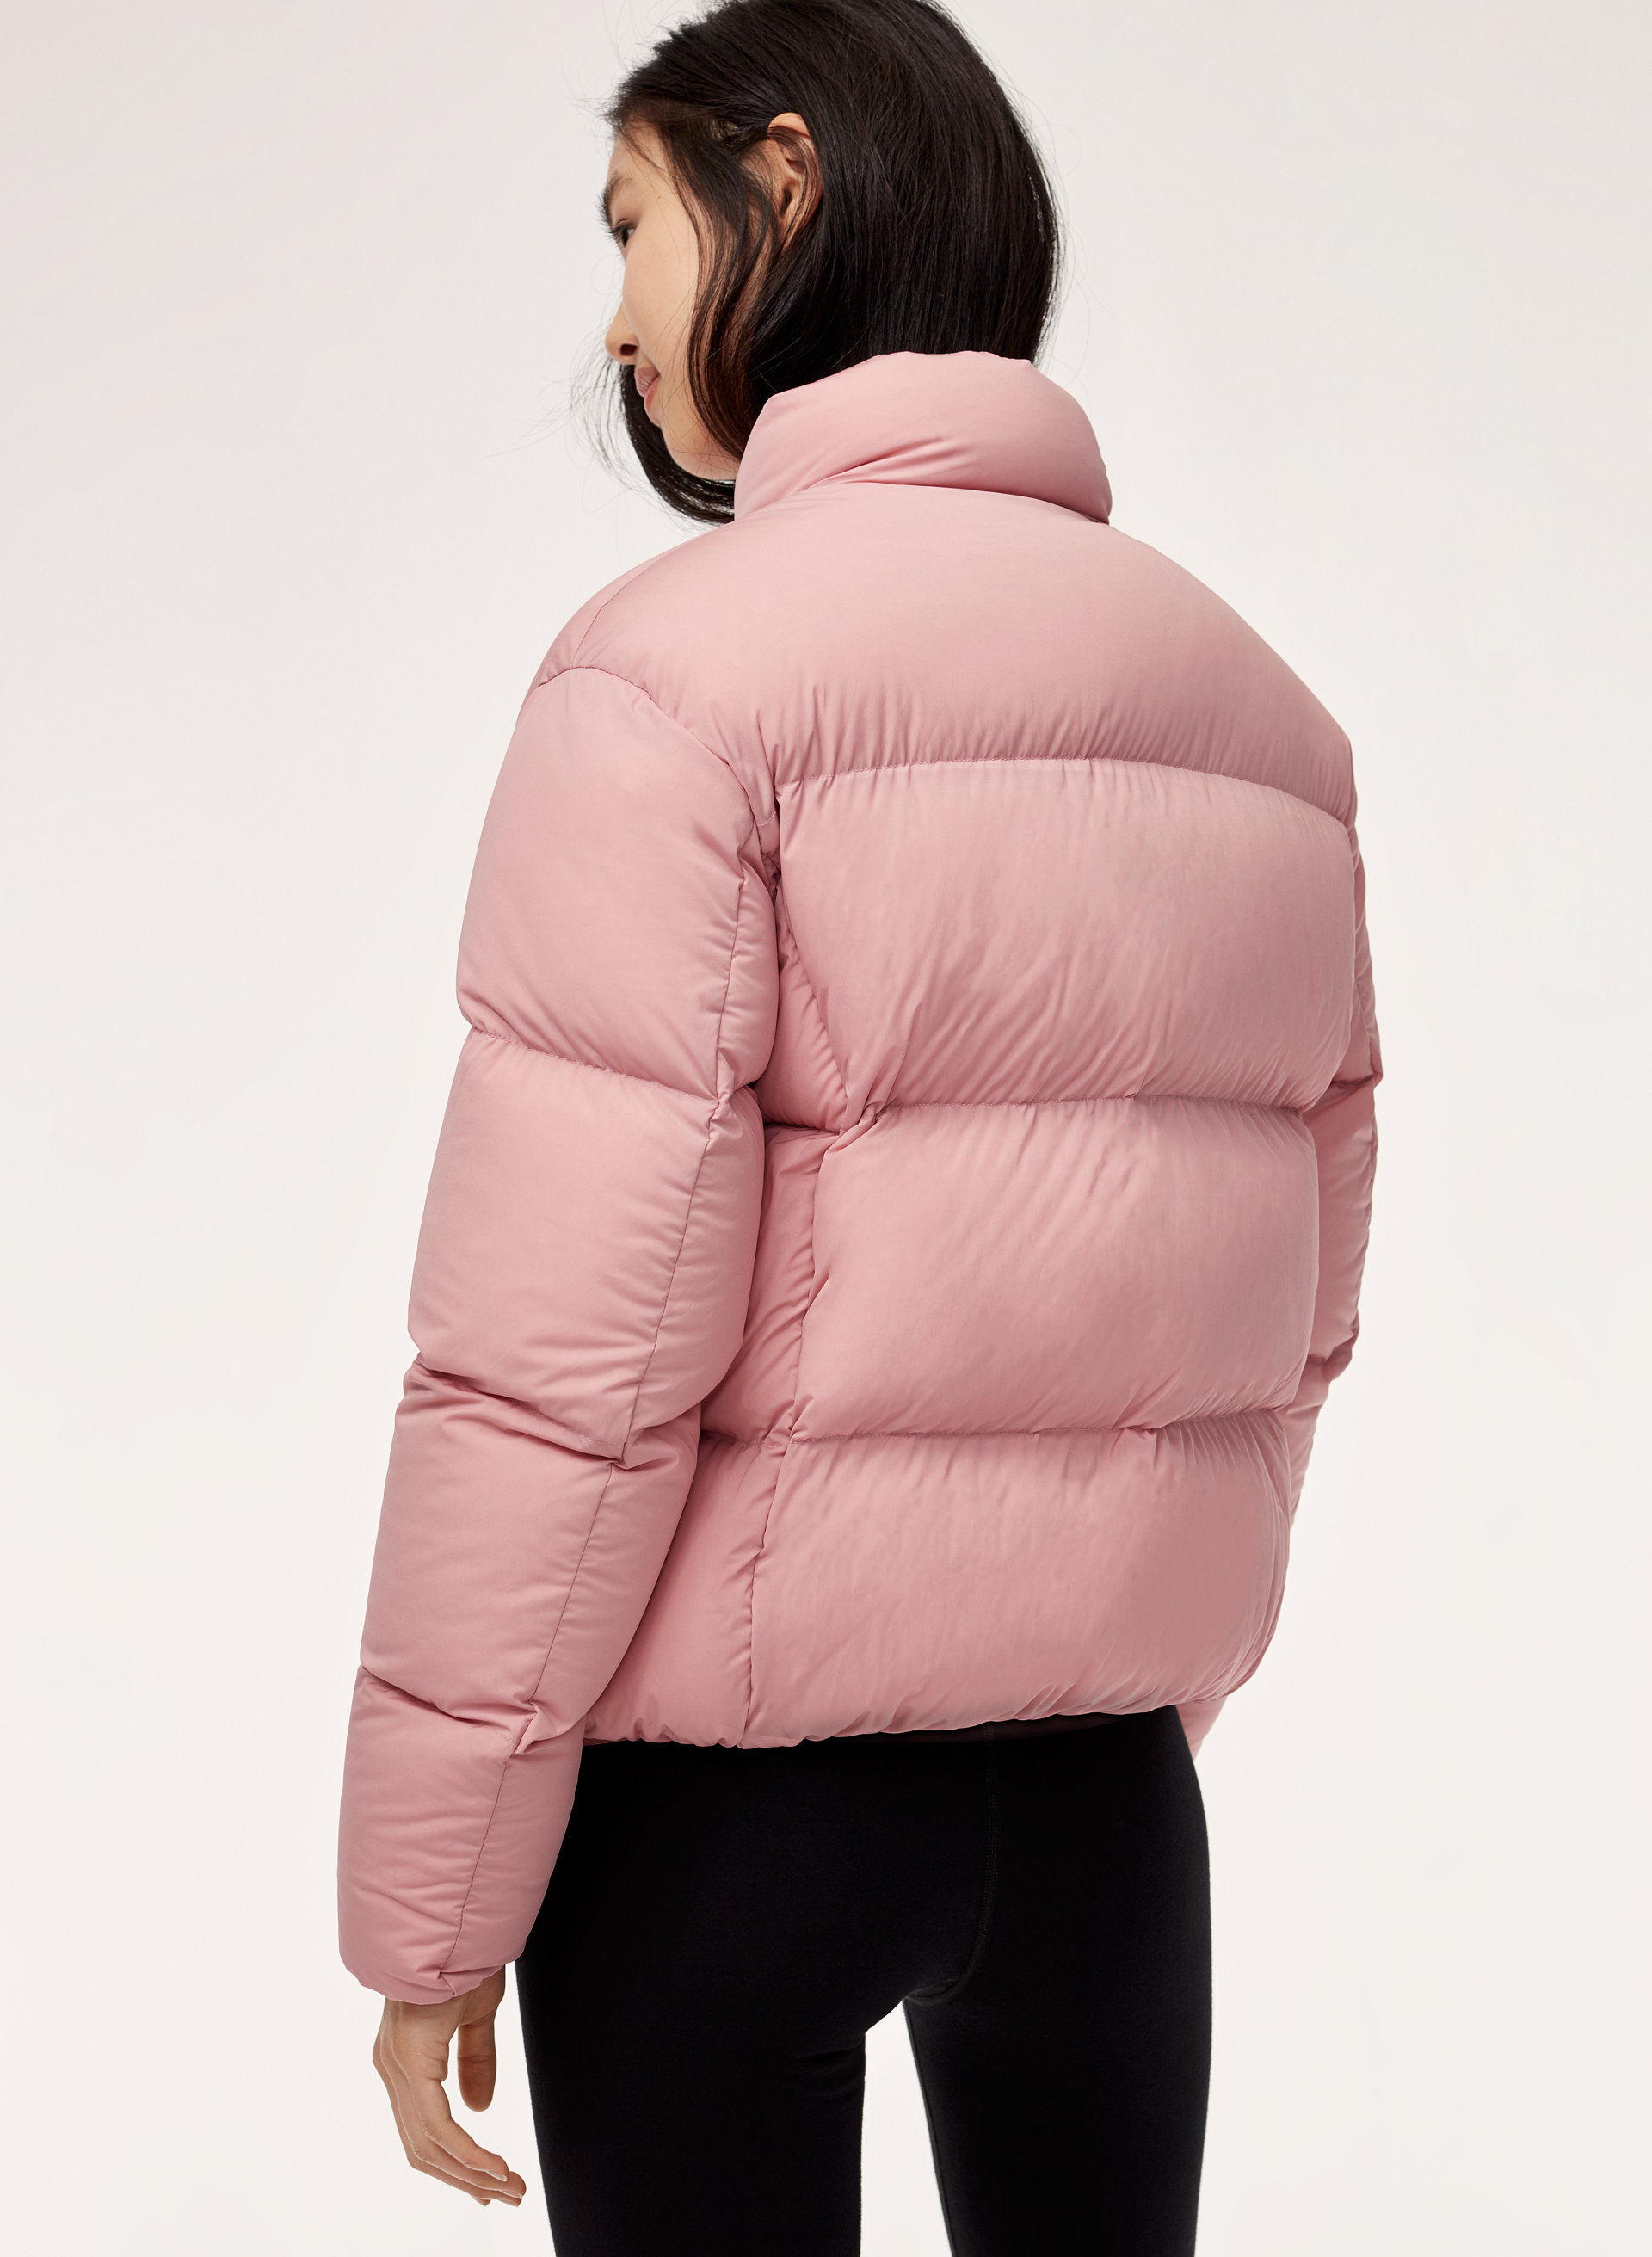 8802bcc483f The Group by Babaton PARK CITY PUFFER | Aritzia CA